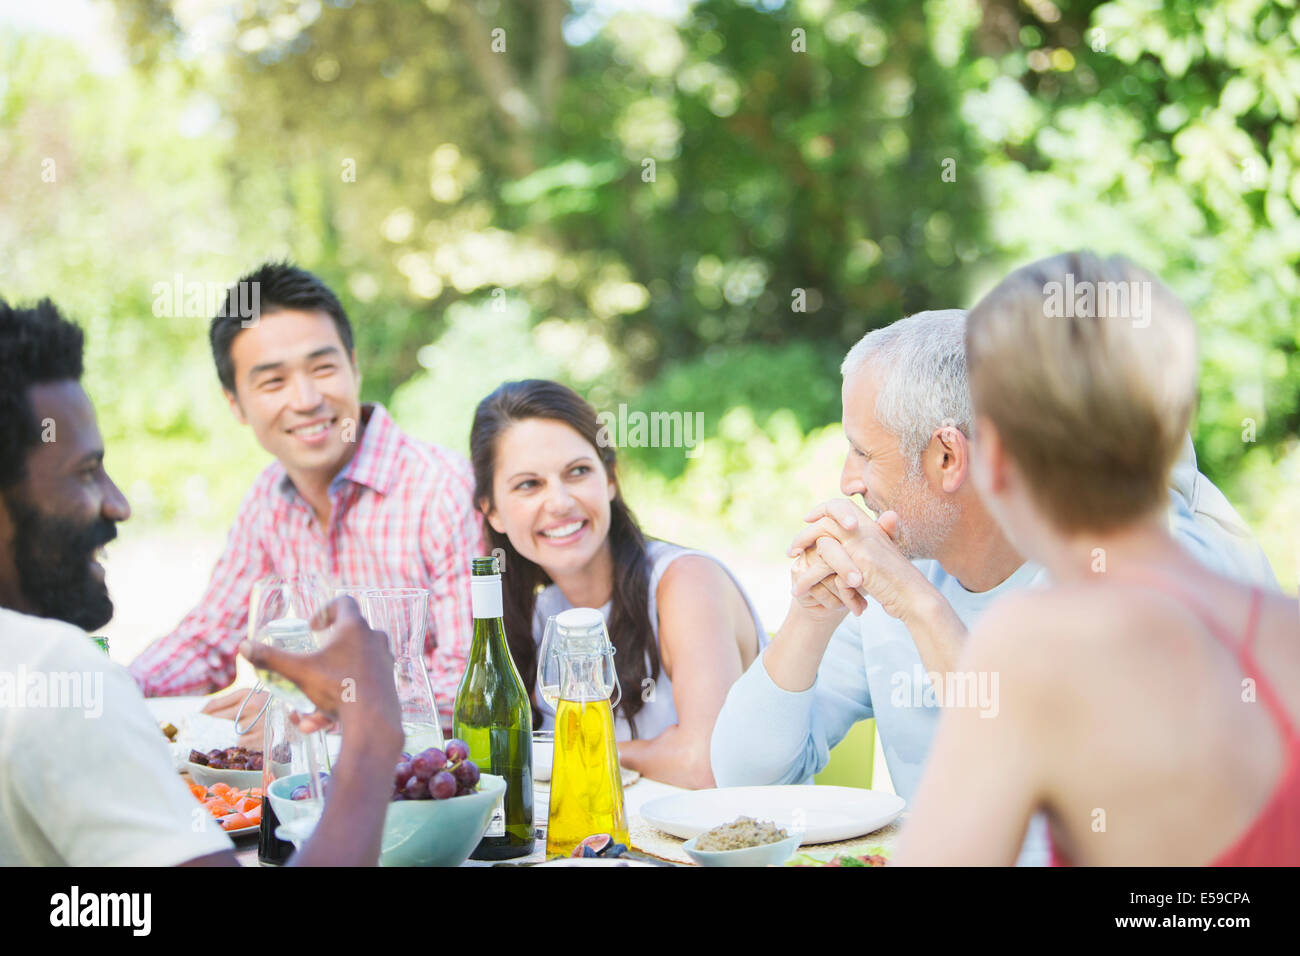 Friends talking at table outdoors - Stock Image